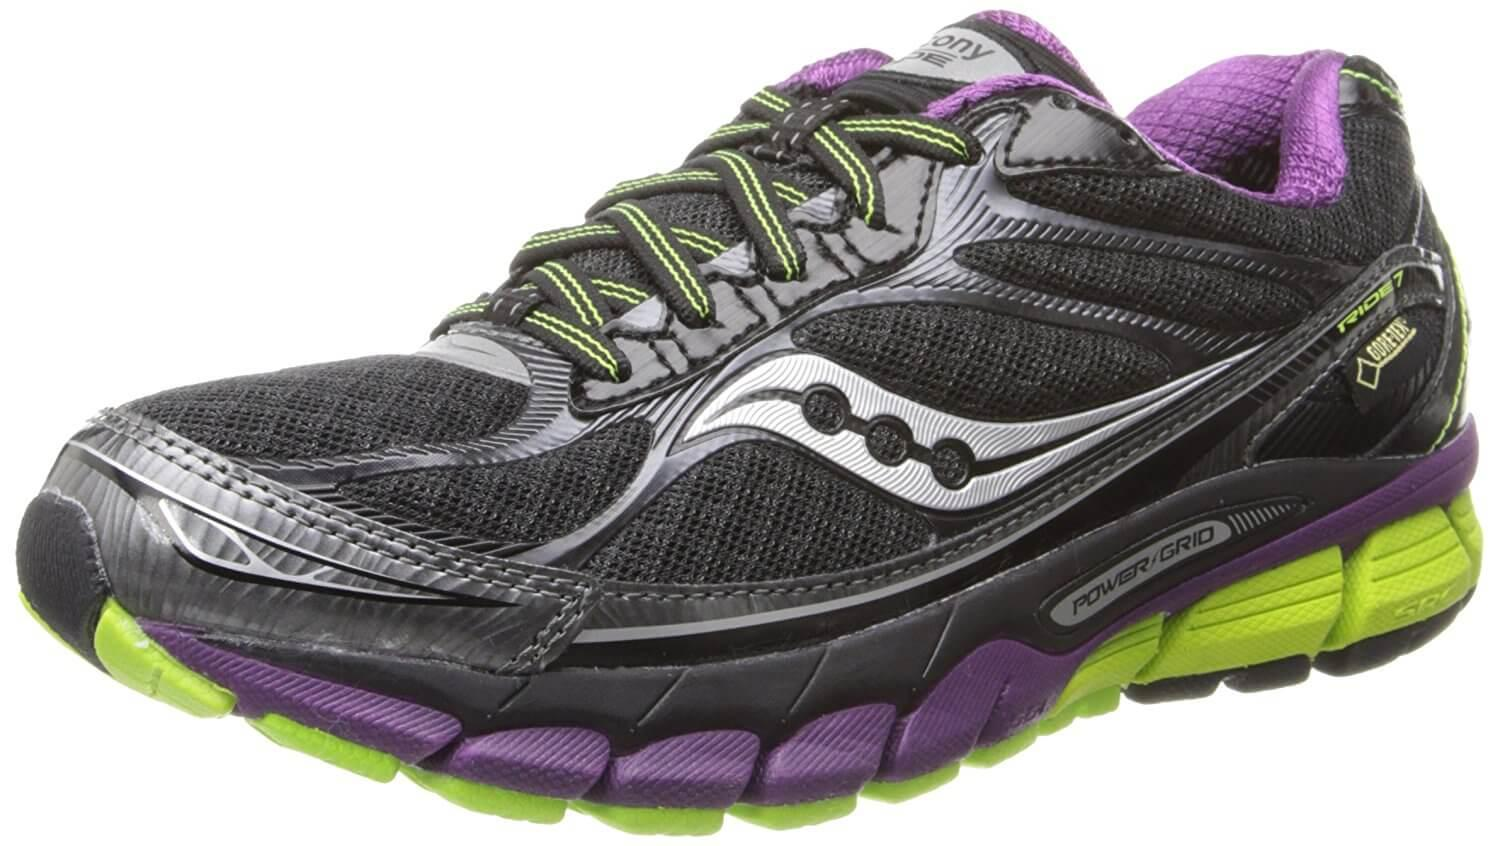 Saucony In Gtx Mar Ride 2019 Not To Reviewed Or 7 Buy rrawxZq